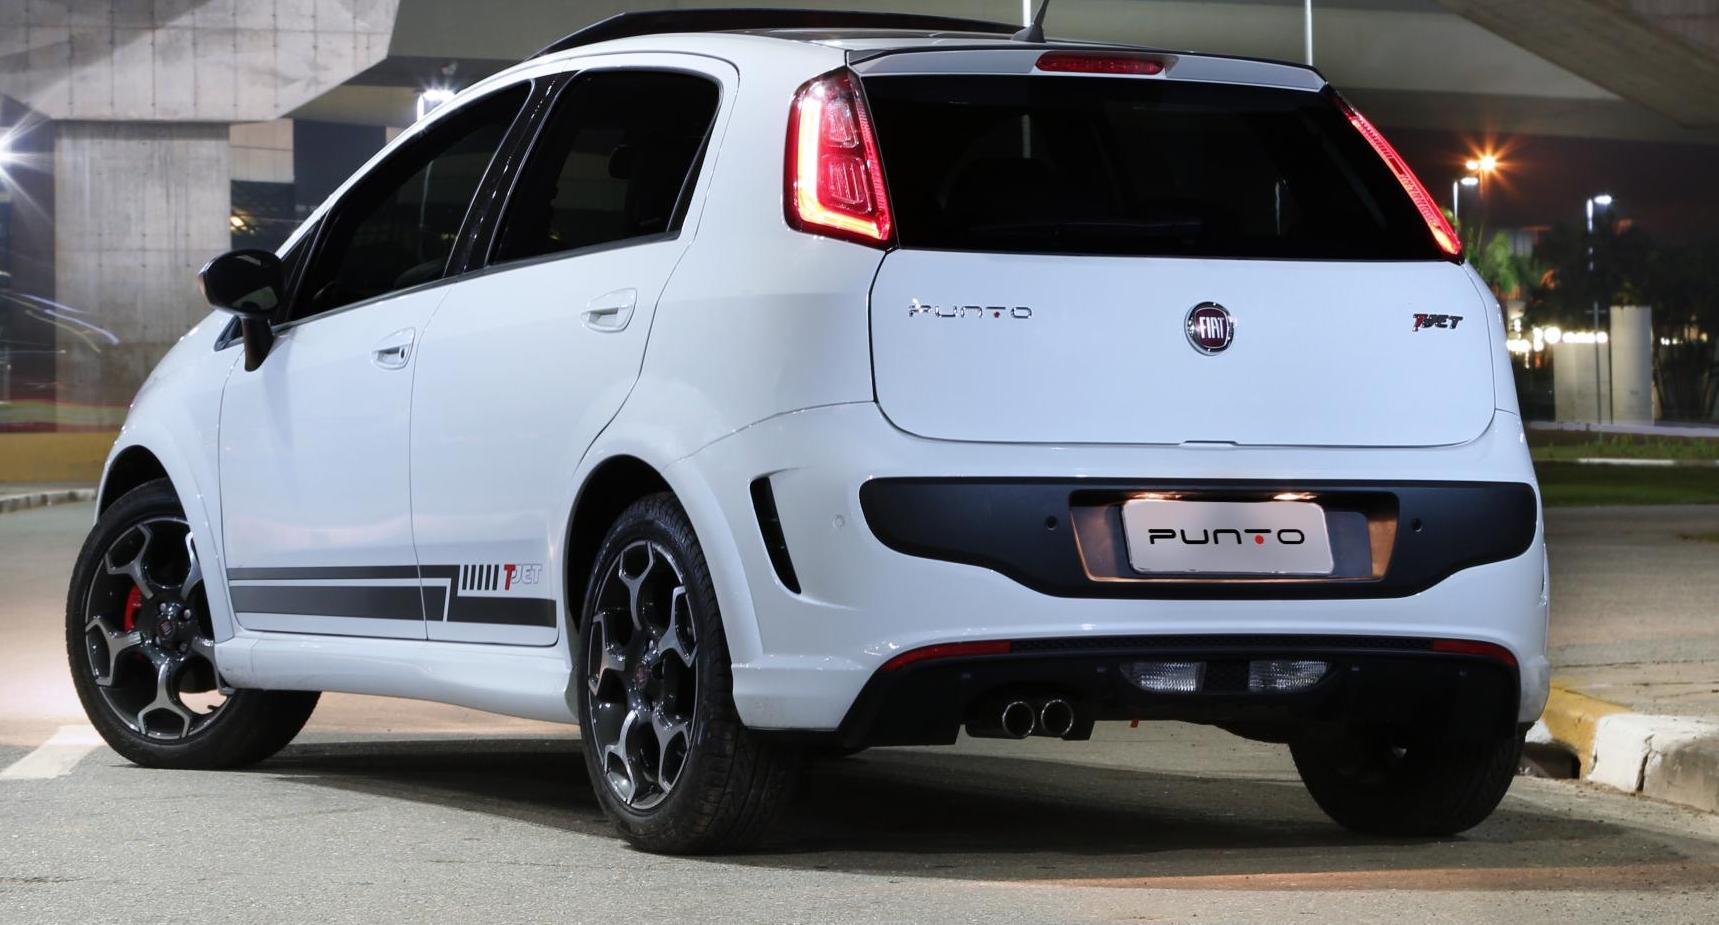 Fiat Punto 2013 – T-Jet – 01 – ALL THE CARS